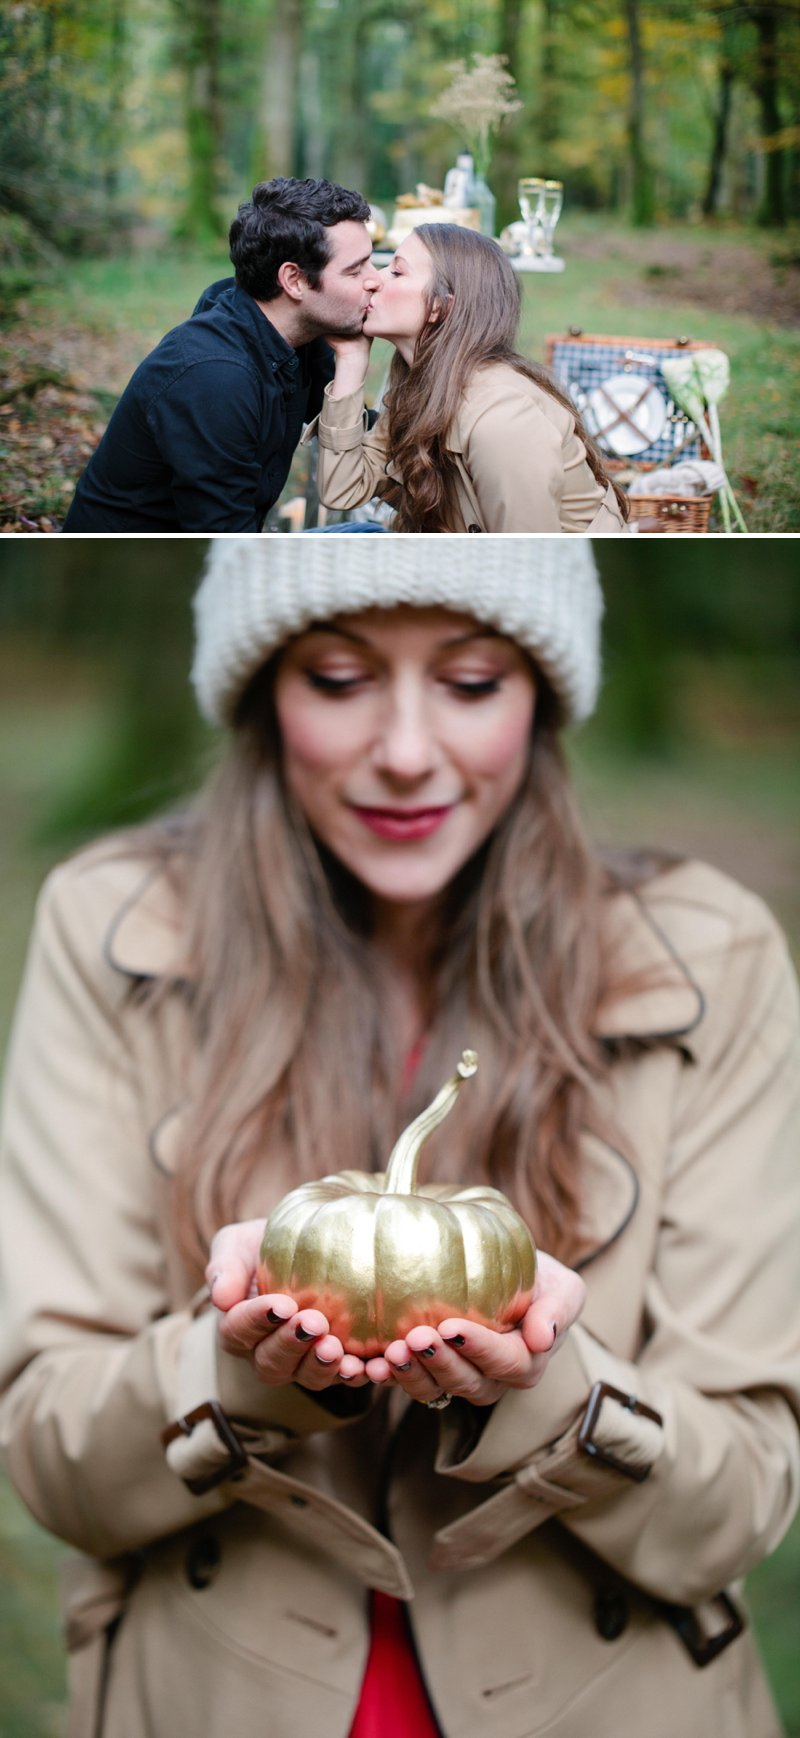 Romantic Prosecco Picnic Engagement Shoot In The Brecon Beacons Image By Millie & Belle Photography 6